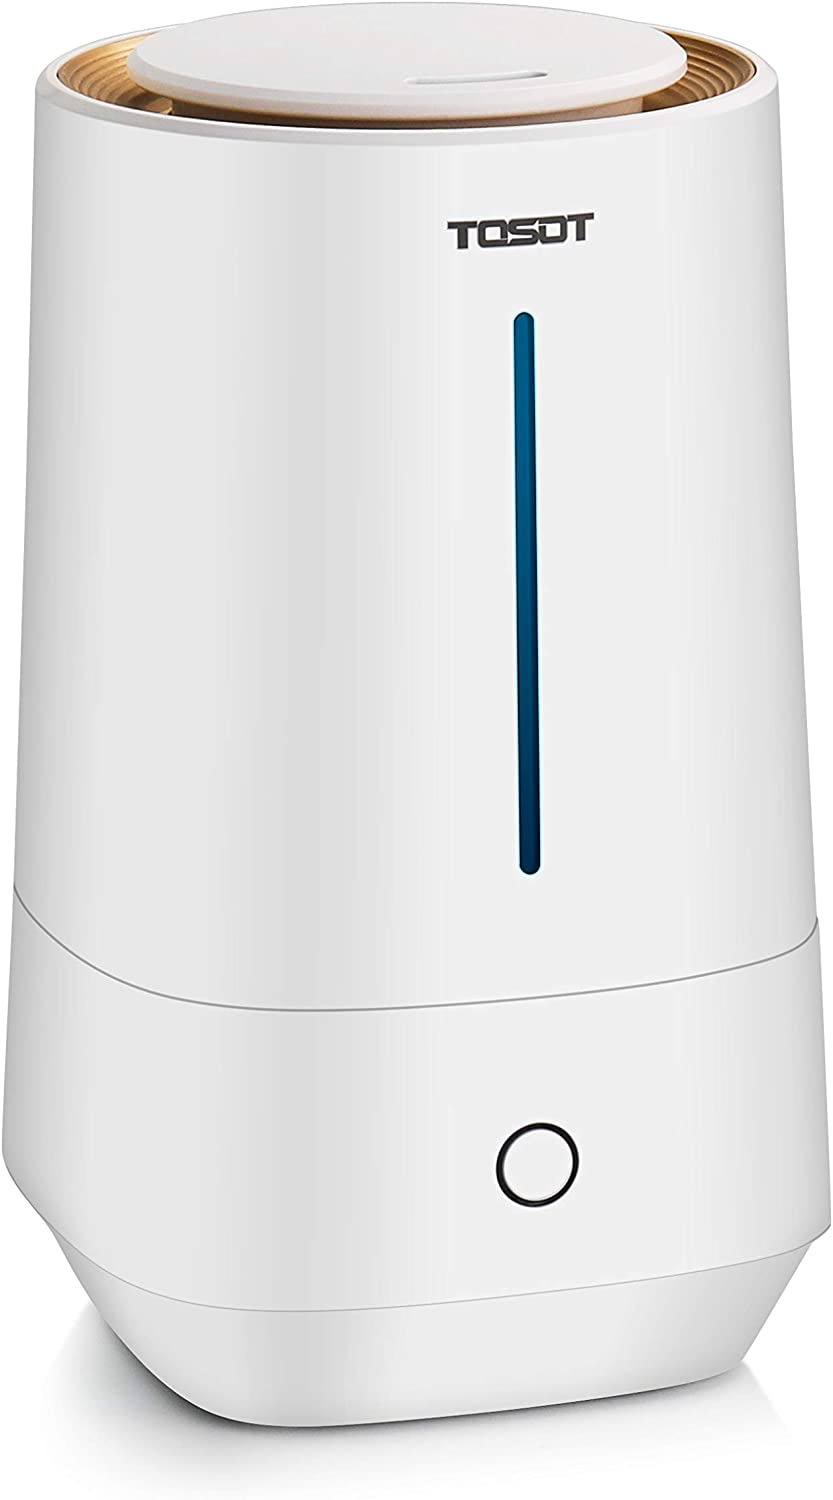 TOSOT Ultrasonic Cool Mist Humidifier, 4L/1.1 Gallon Essential Oil Diffuser, Top-Filling Tank, Micro-Mist Technology, 24-Hour Run Time, Auto Shut-Off, Whisper Quiet - Air Moisturizer for Home, Bedroom